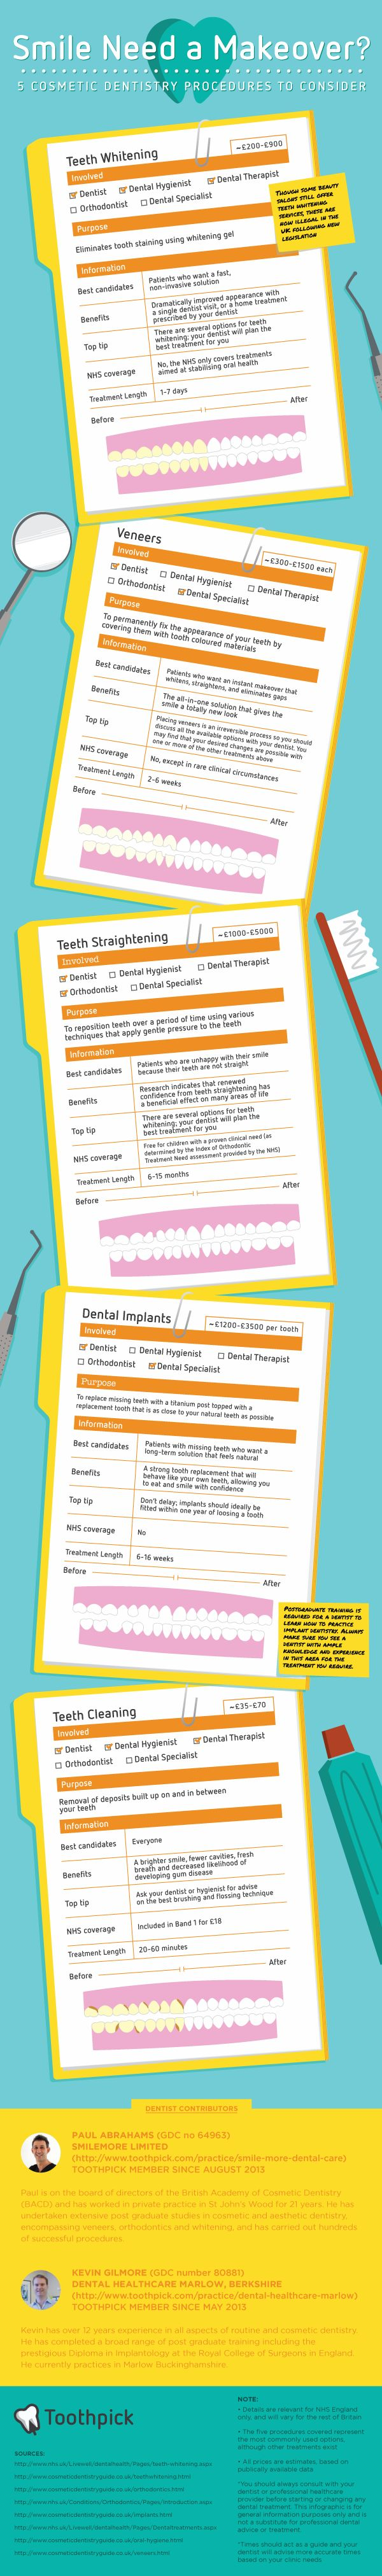 5 Common Cosmetic Dentistry Procedures - Why, How Much and For Who? [Infographic] - Toothpick - The Mouthful Blog